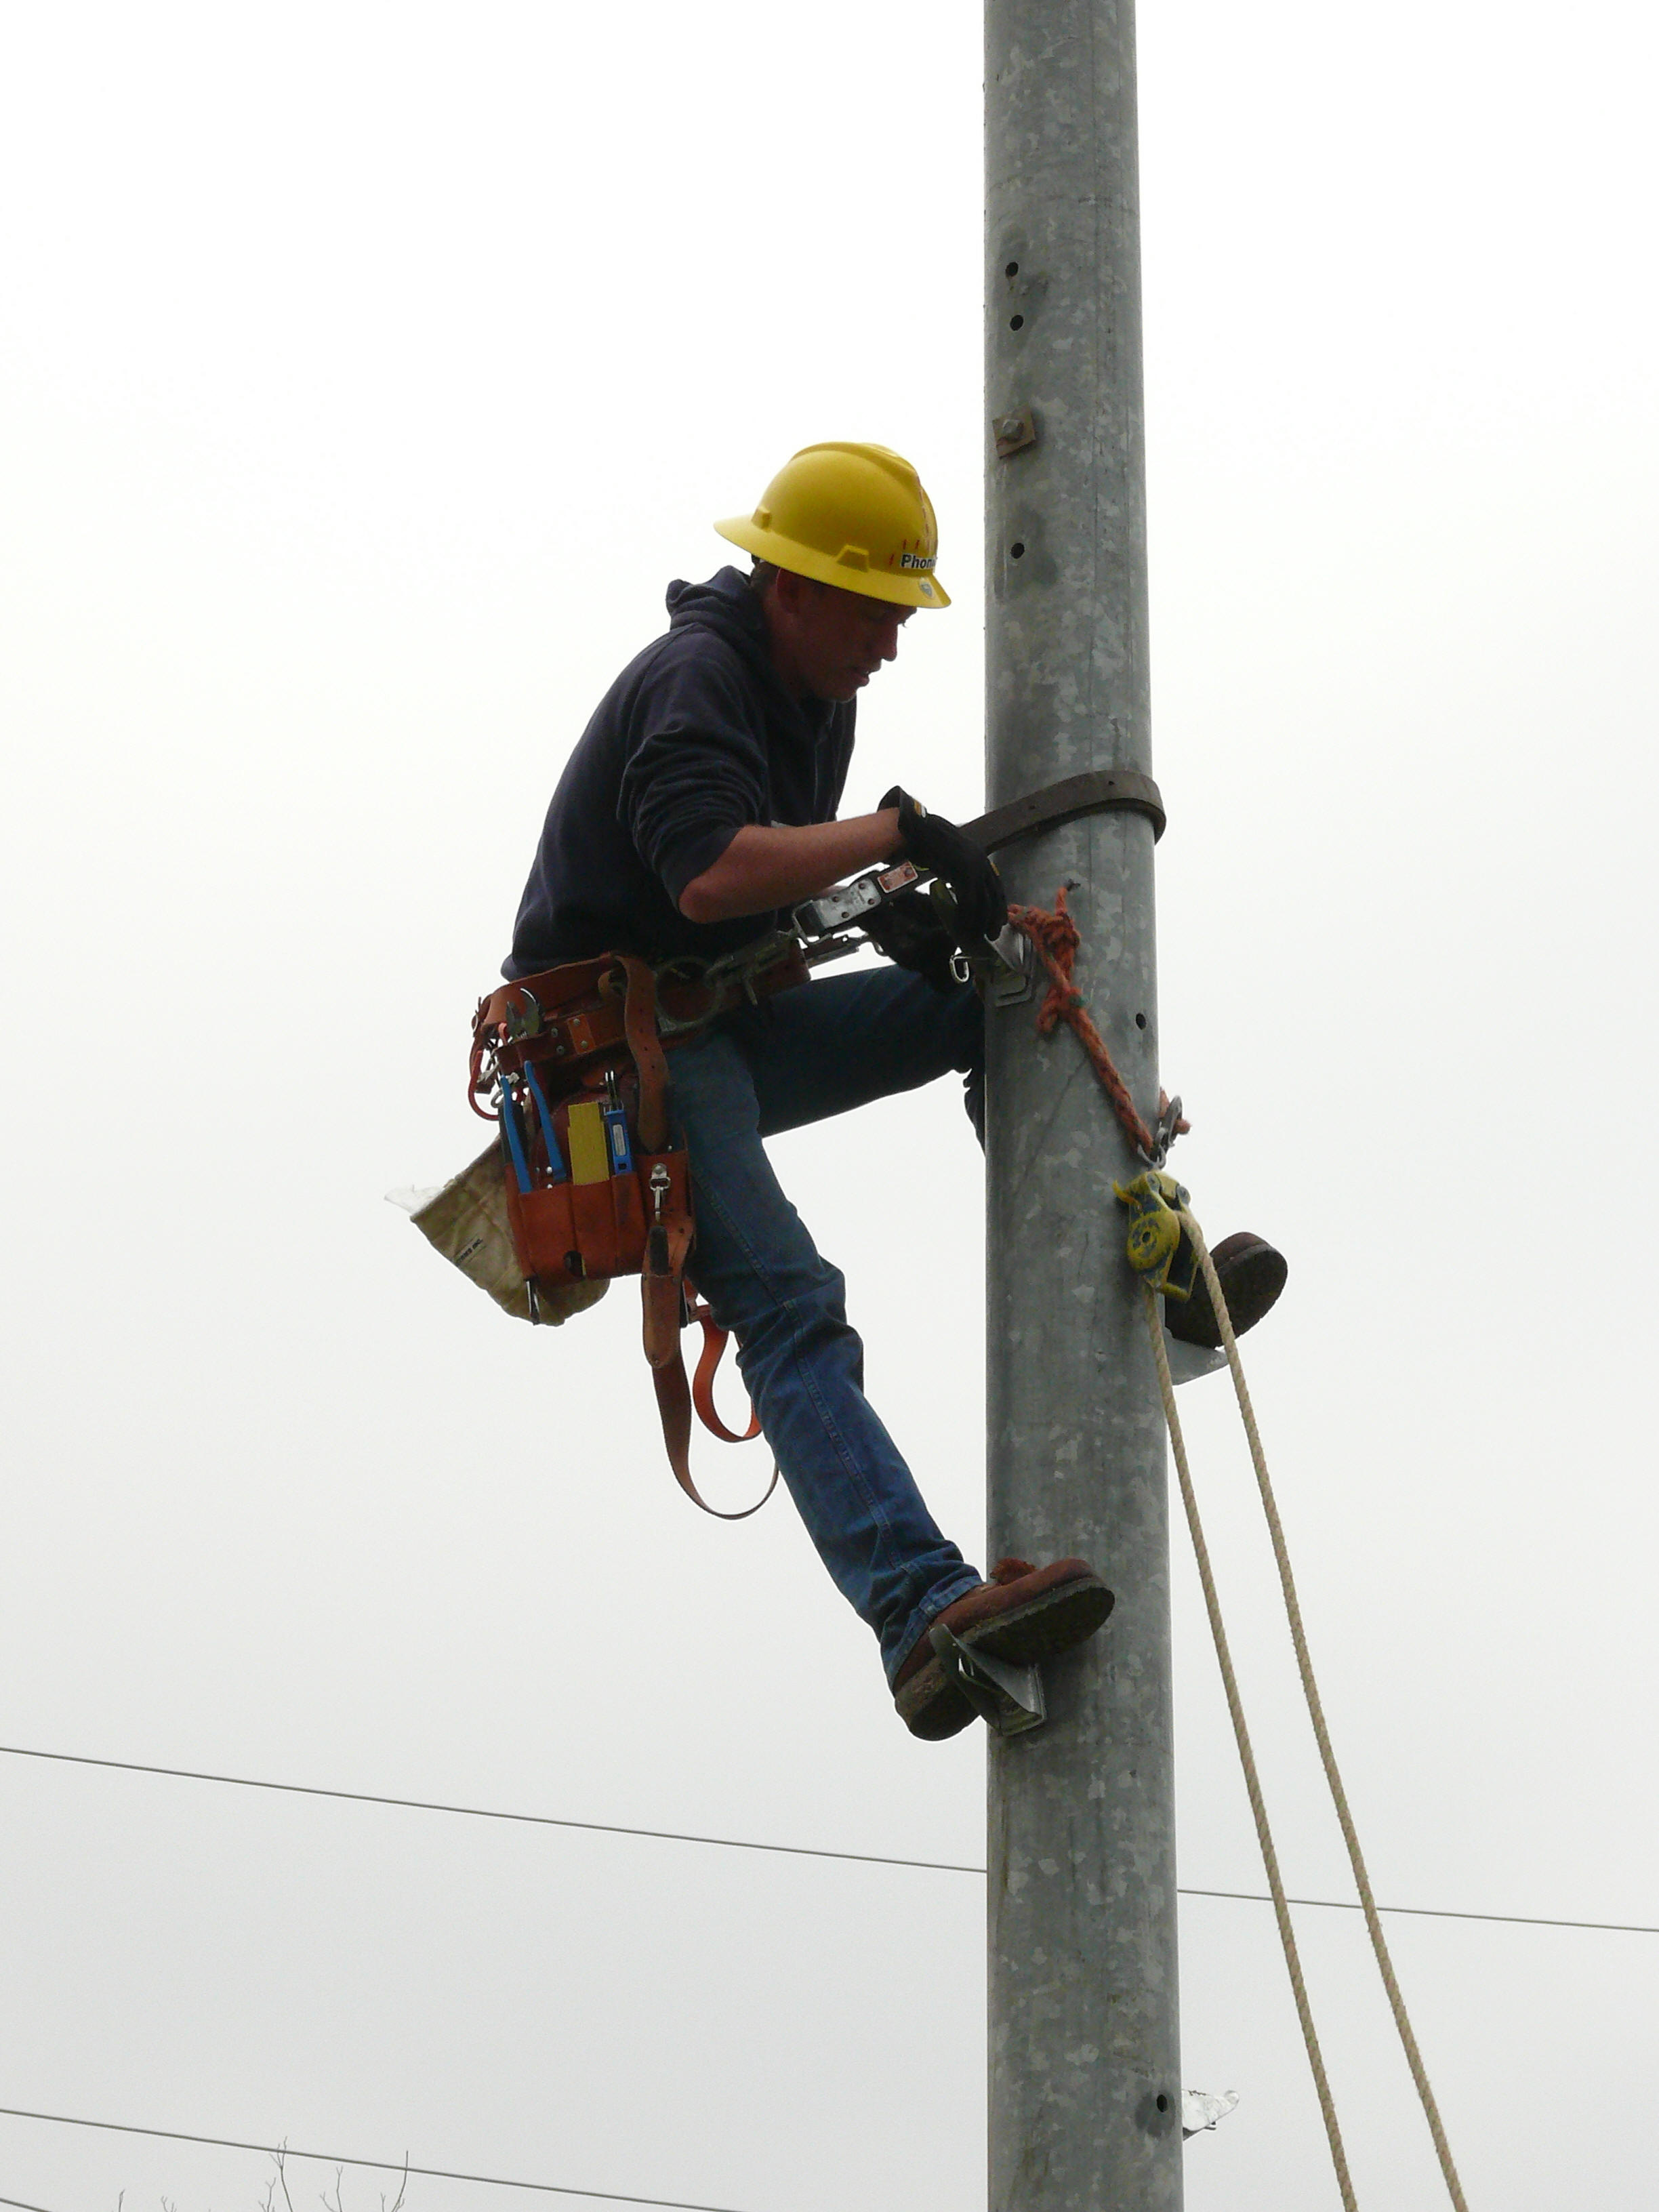 Utility Poles Install Or Replace Privately Owned Utility